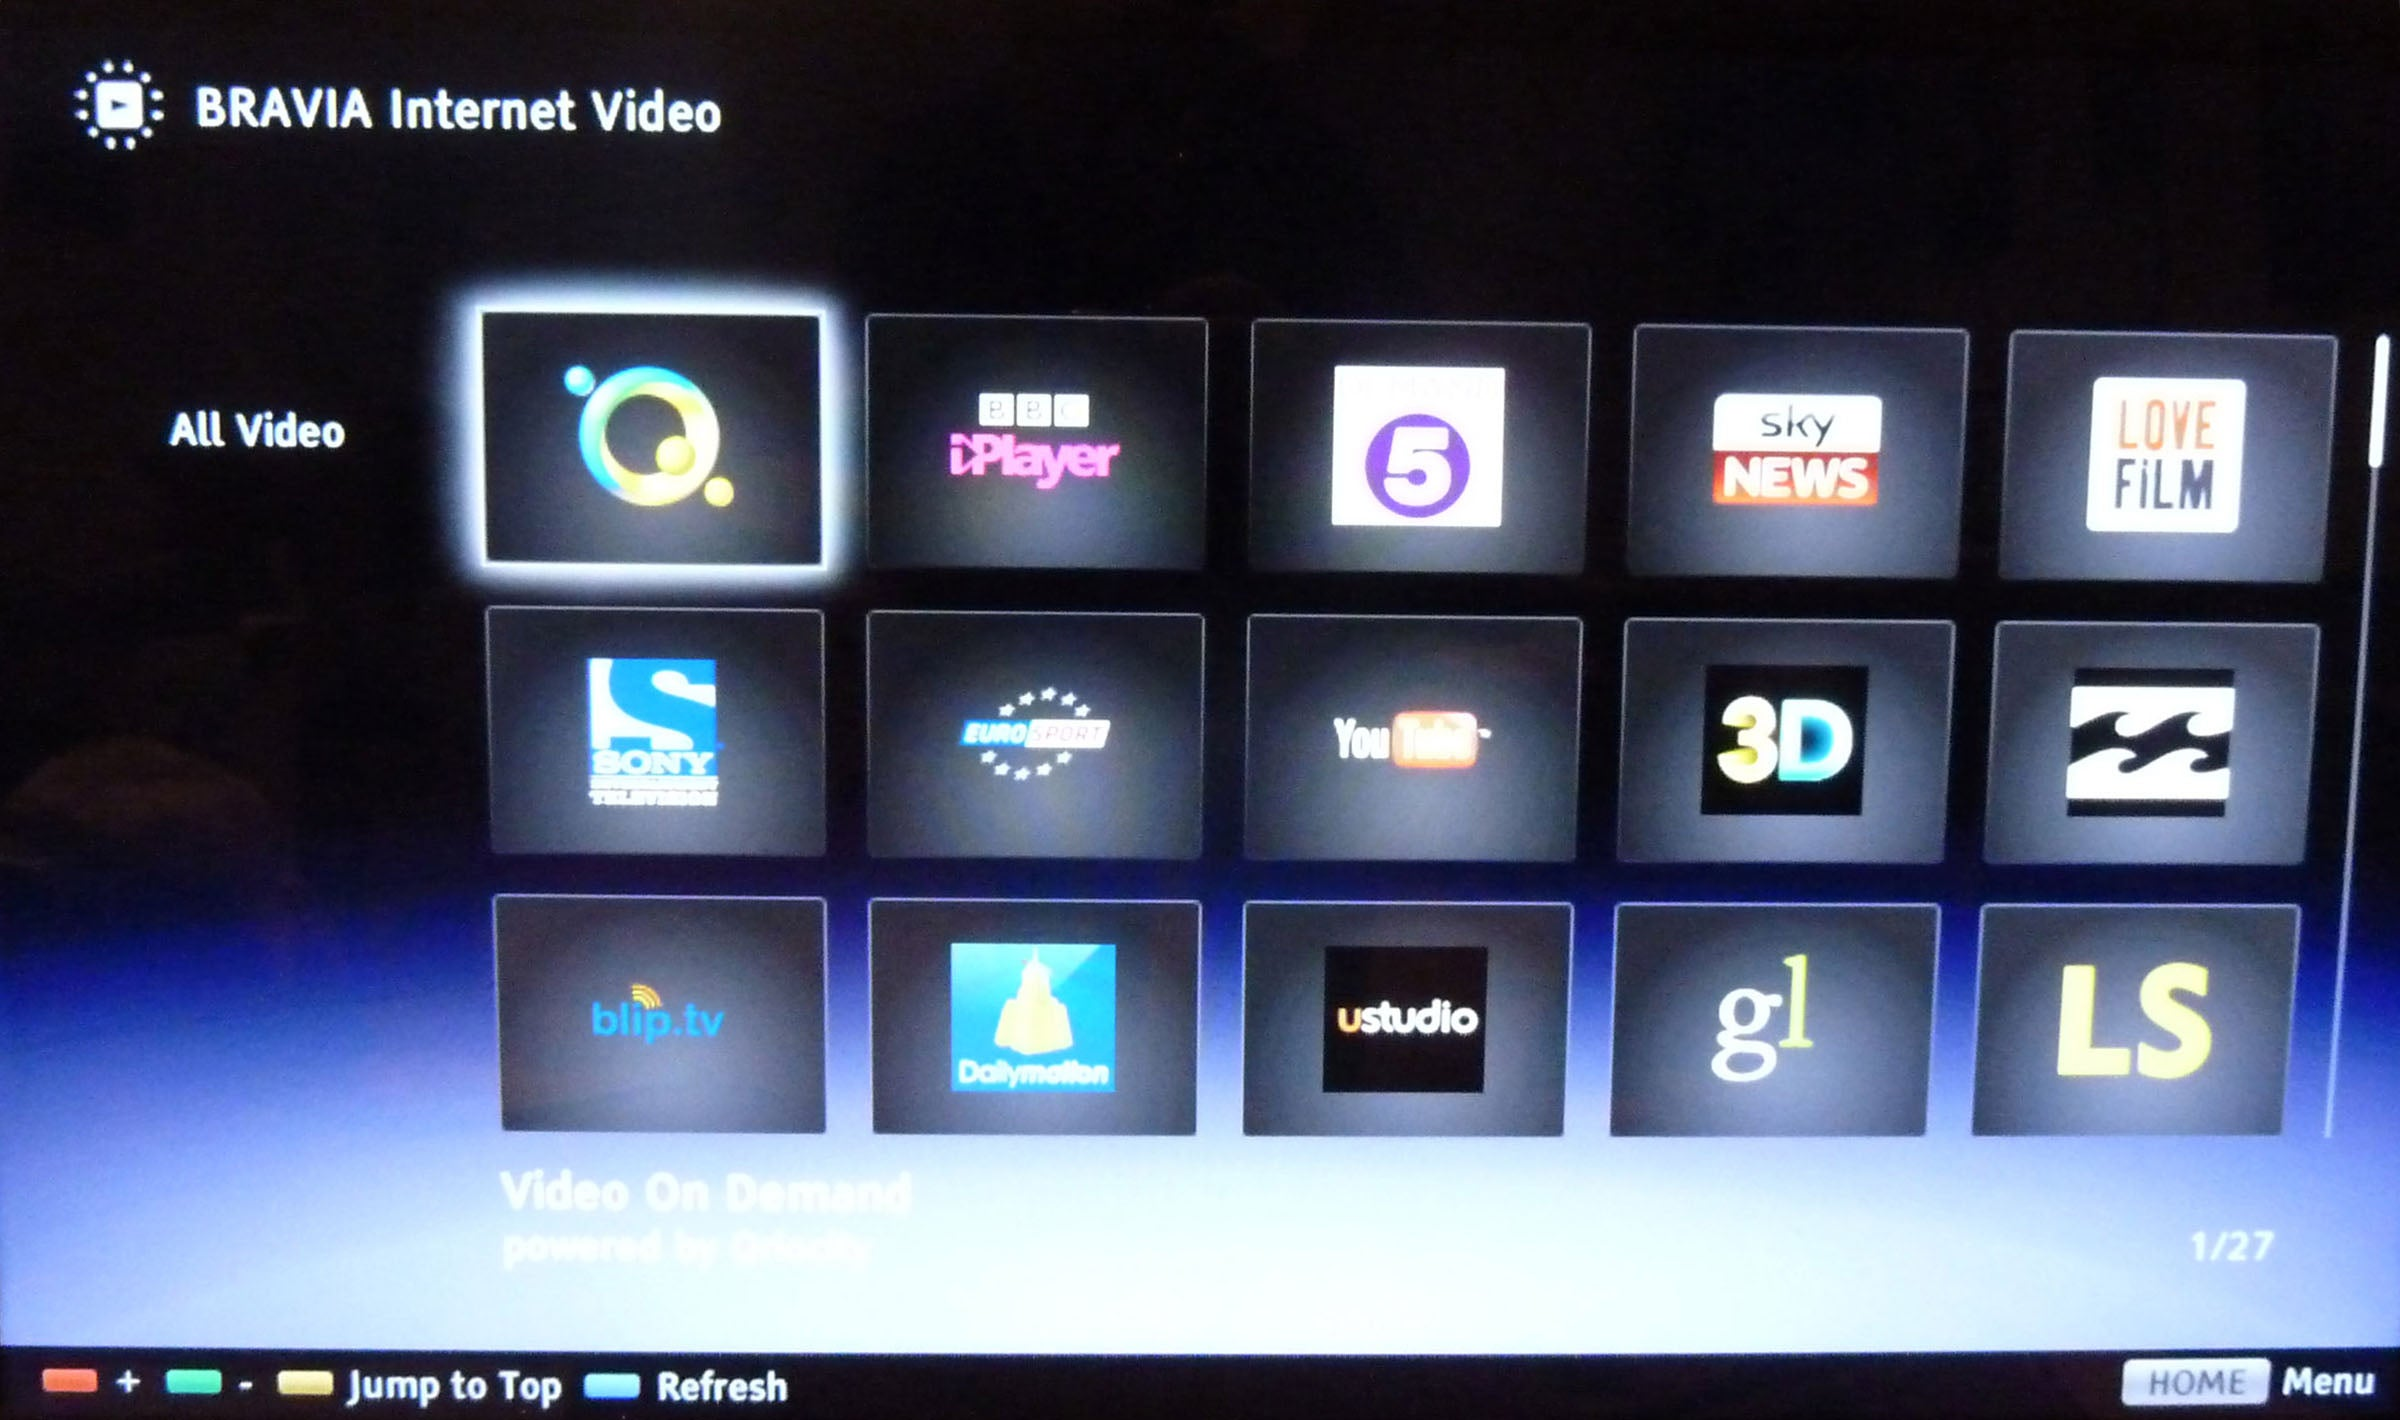 Sony Bravia Internet Video Smart Tv Platform Review